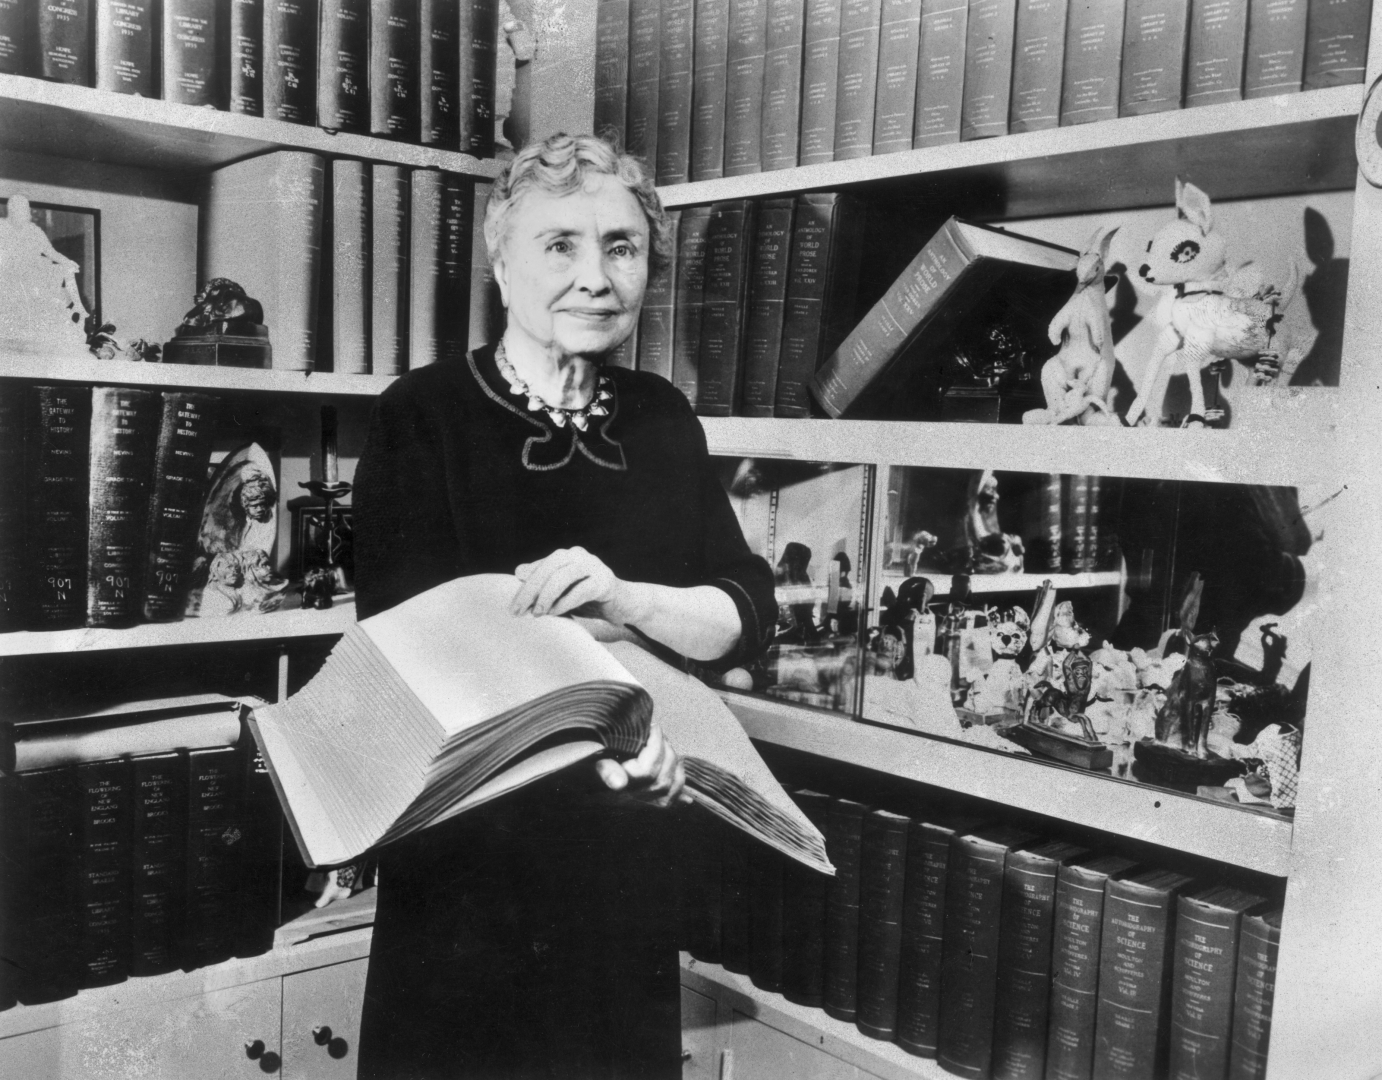 Portrait of American writer, educator and advocate for the disabled Helen Keller (1880 - 1968) holding a Braille volume and surrounded by shelves containing books and decorative figurines. A childhood illness left Keller blind, deaf and mute. (Photo by Hulton Archive/Getty Images)